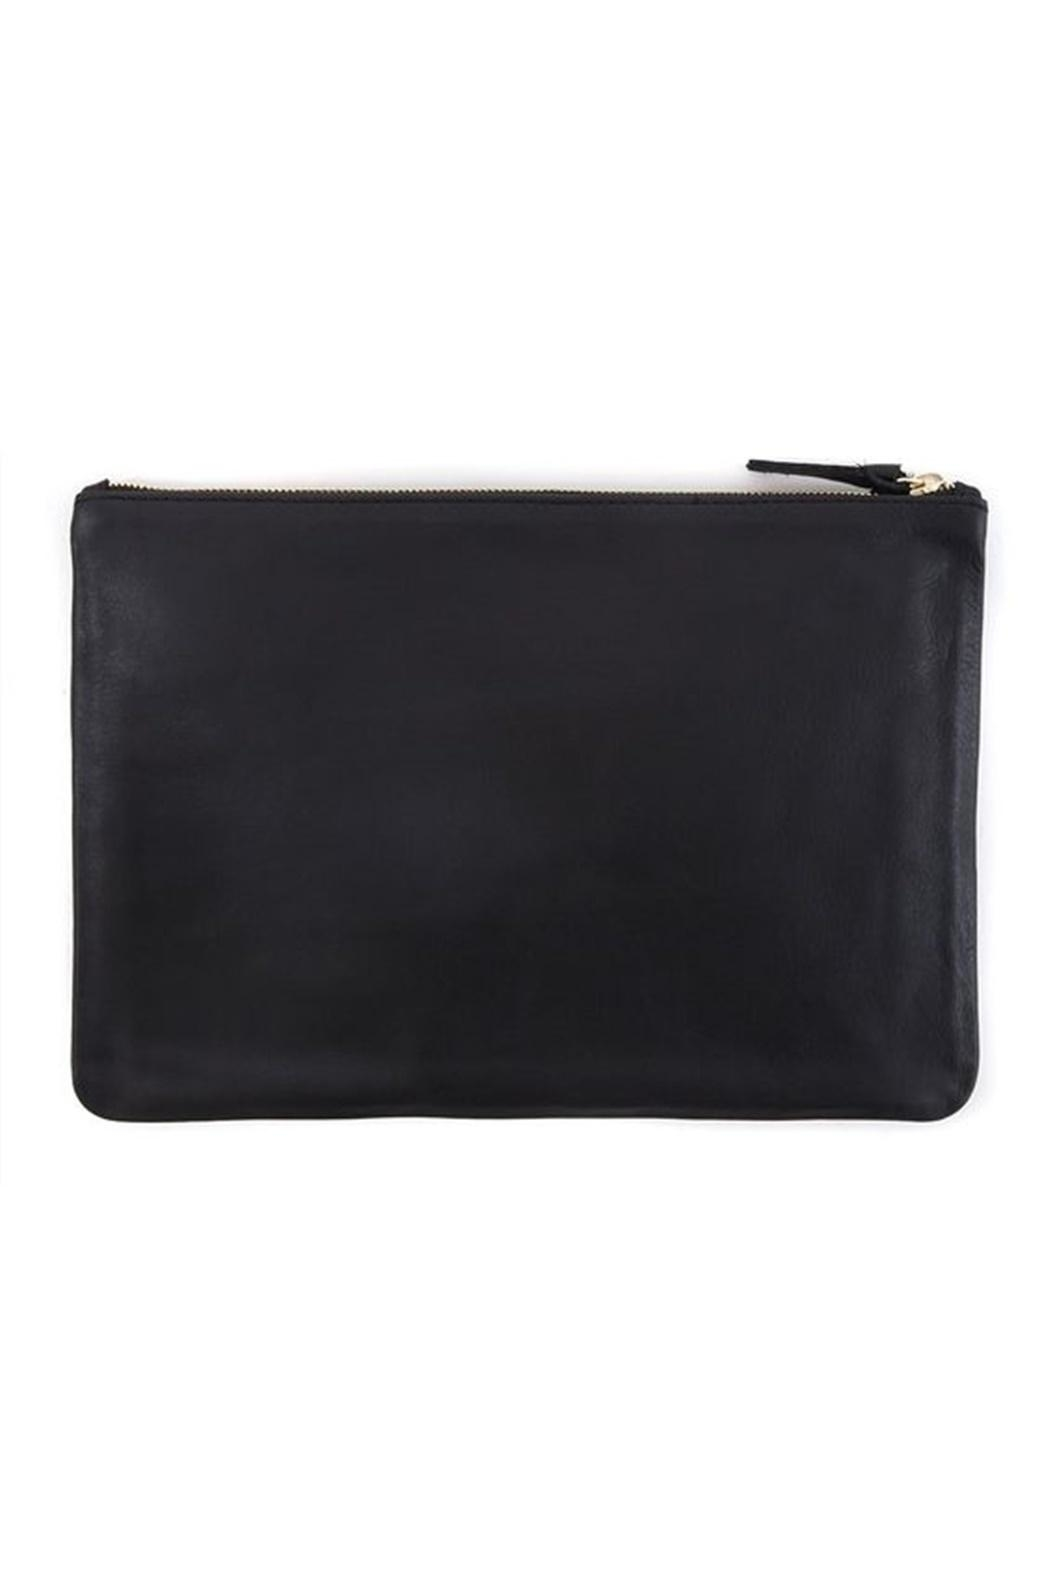 Clare V. Flat Clutch Supreme - Side Cropped Image